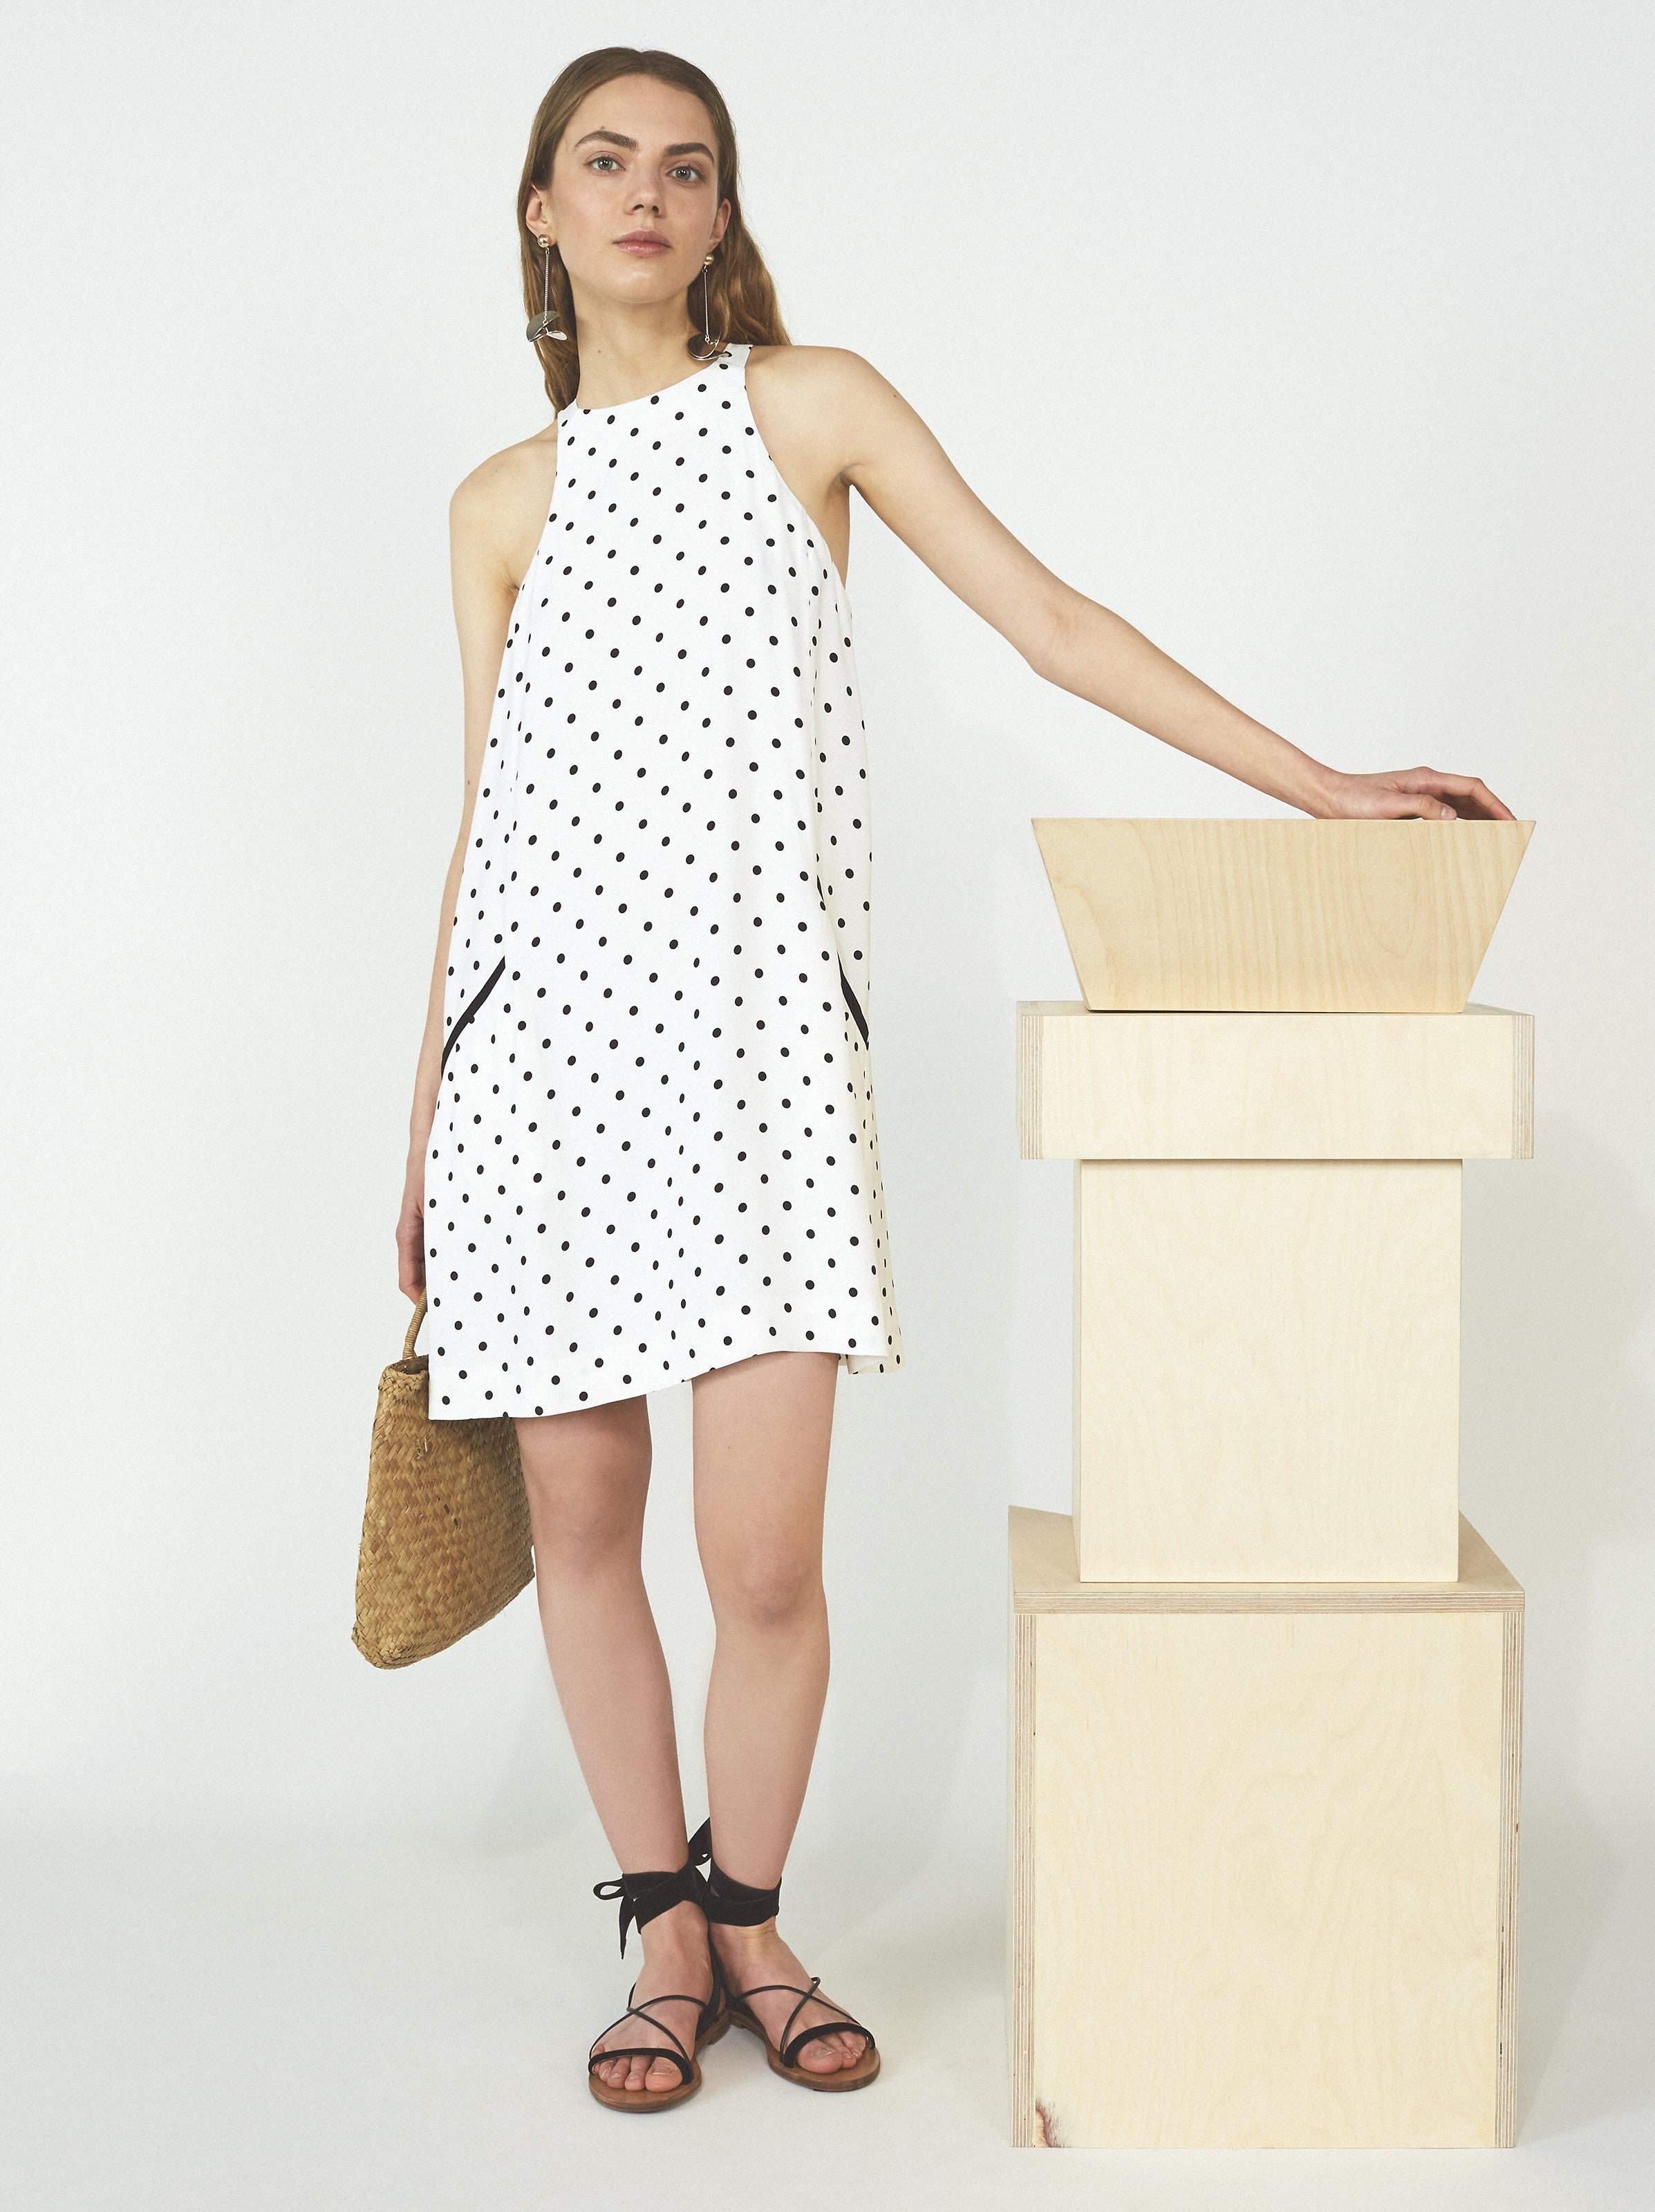 Rojo Polka Dot Dress